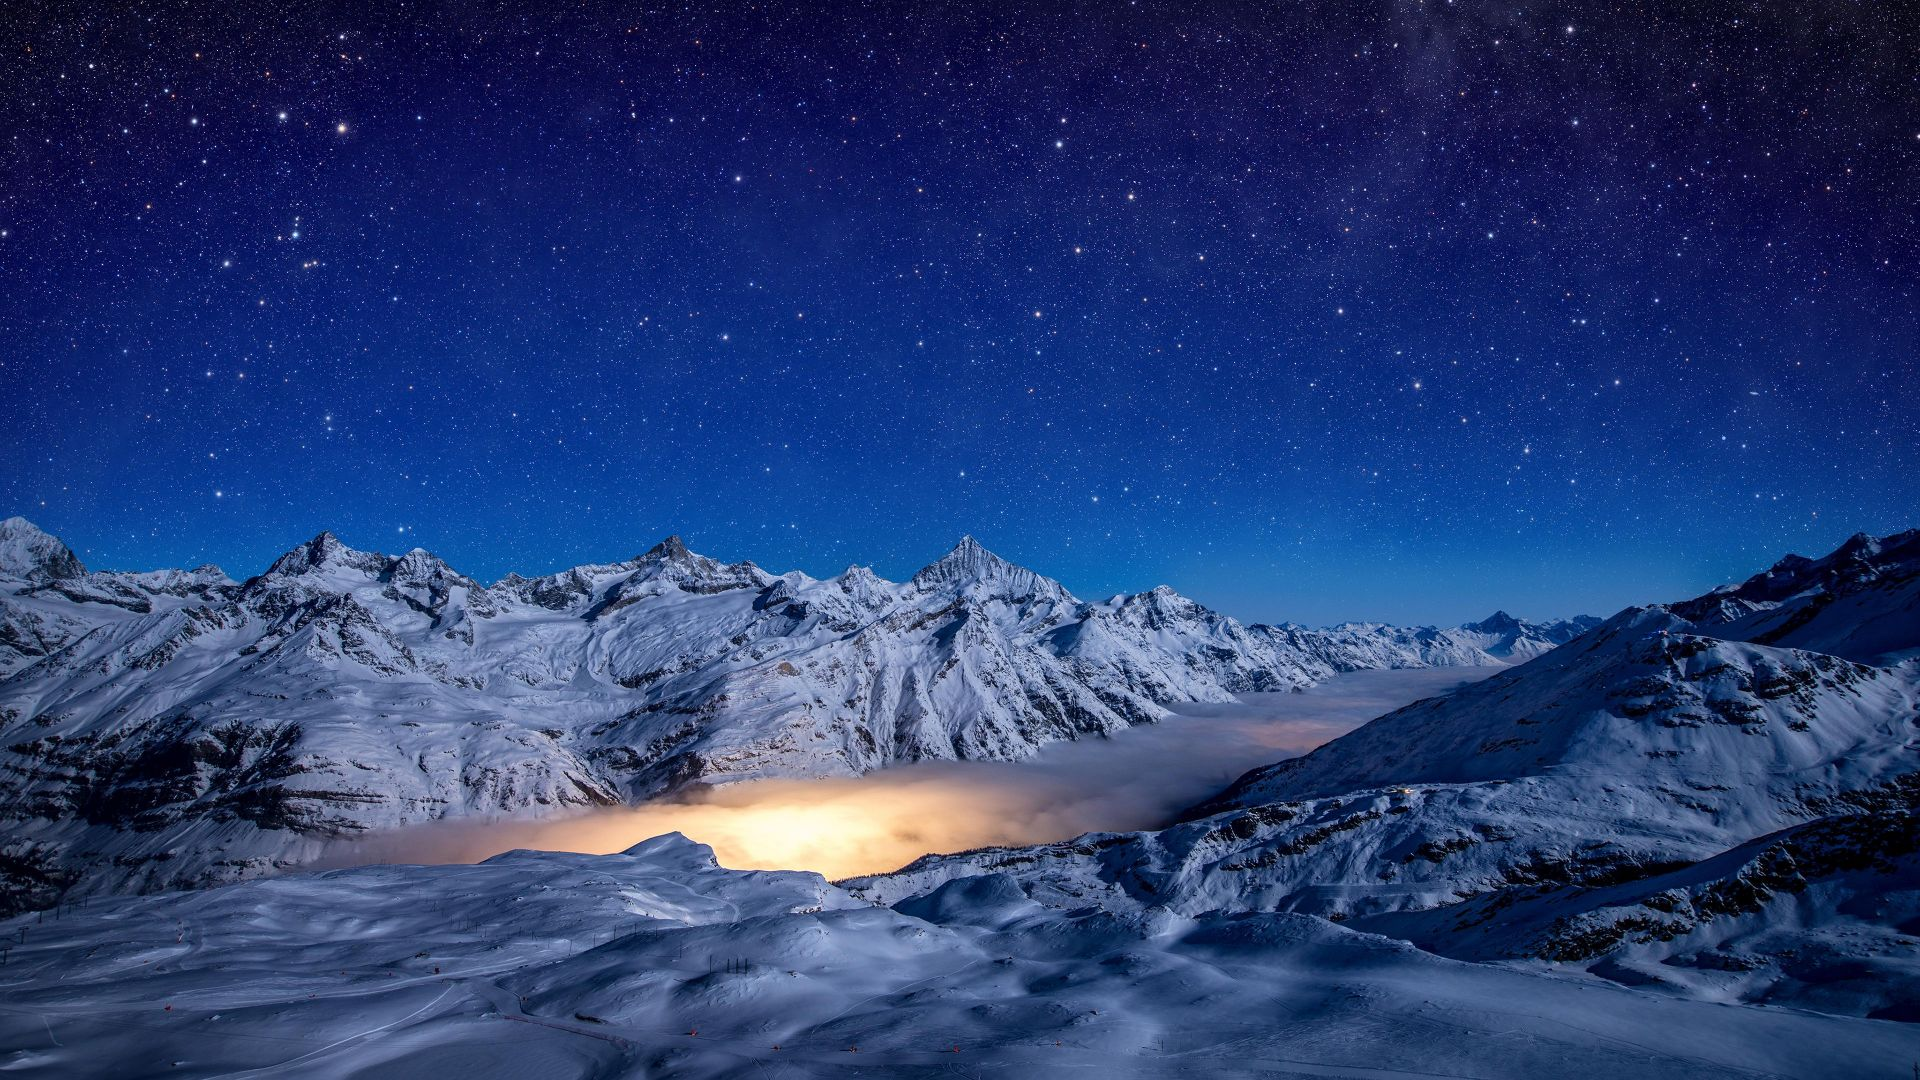 night, mountains, sky, stars, 4k (horizontal)